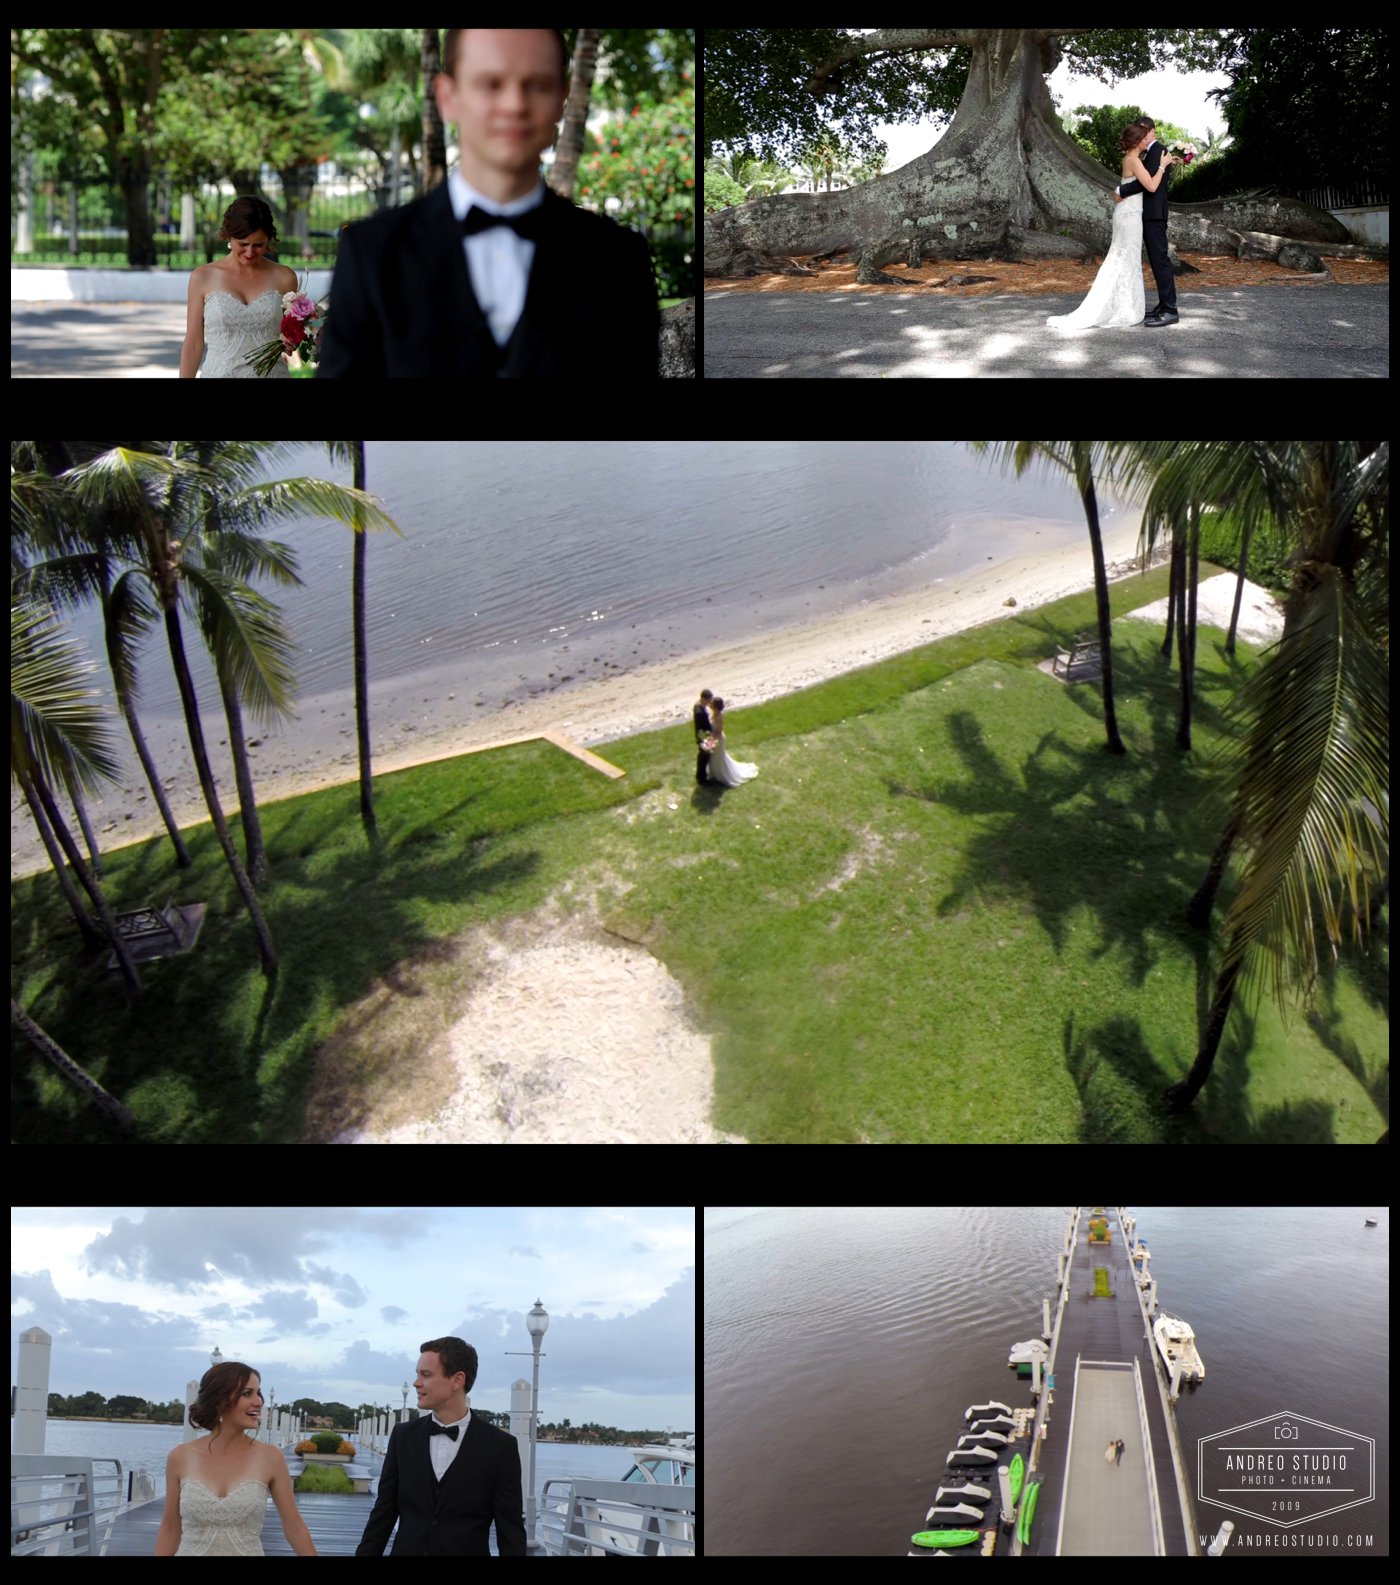 Shea Christine Andy Wedding West Palm Beach.jpg